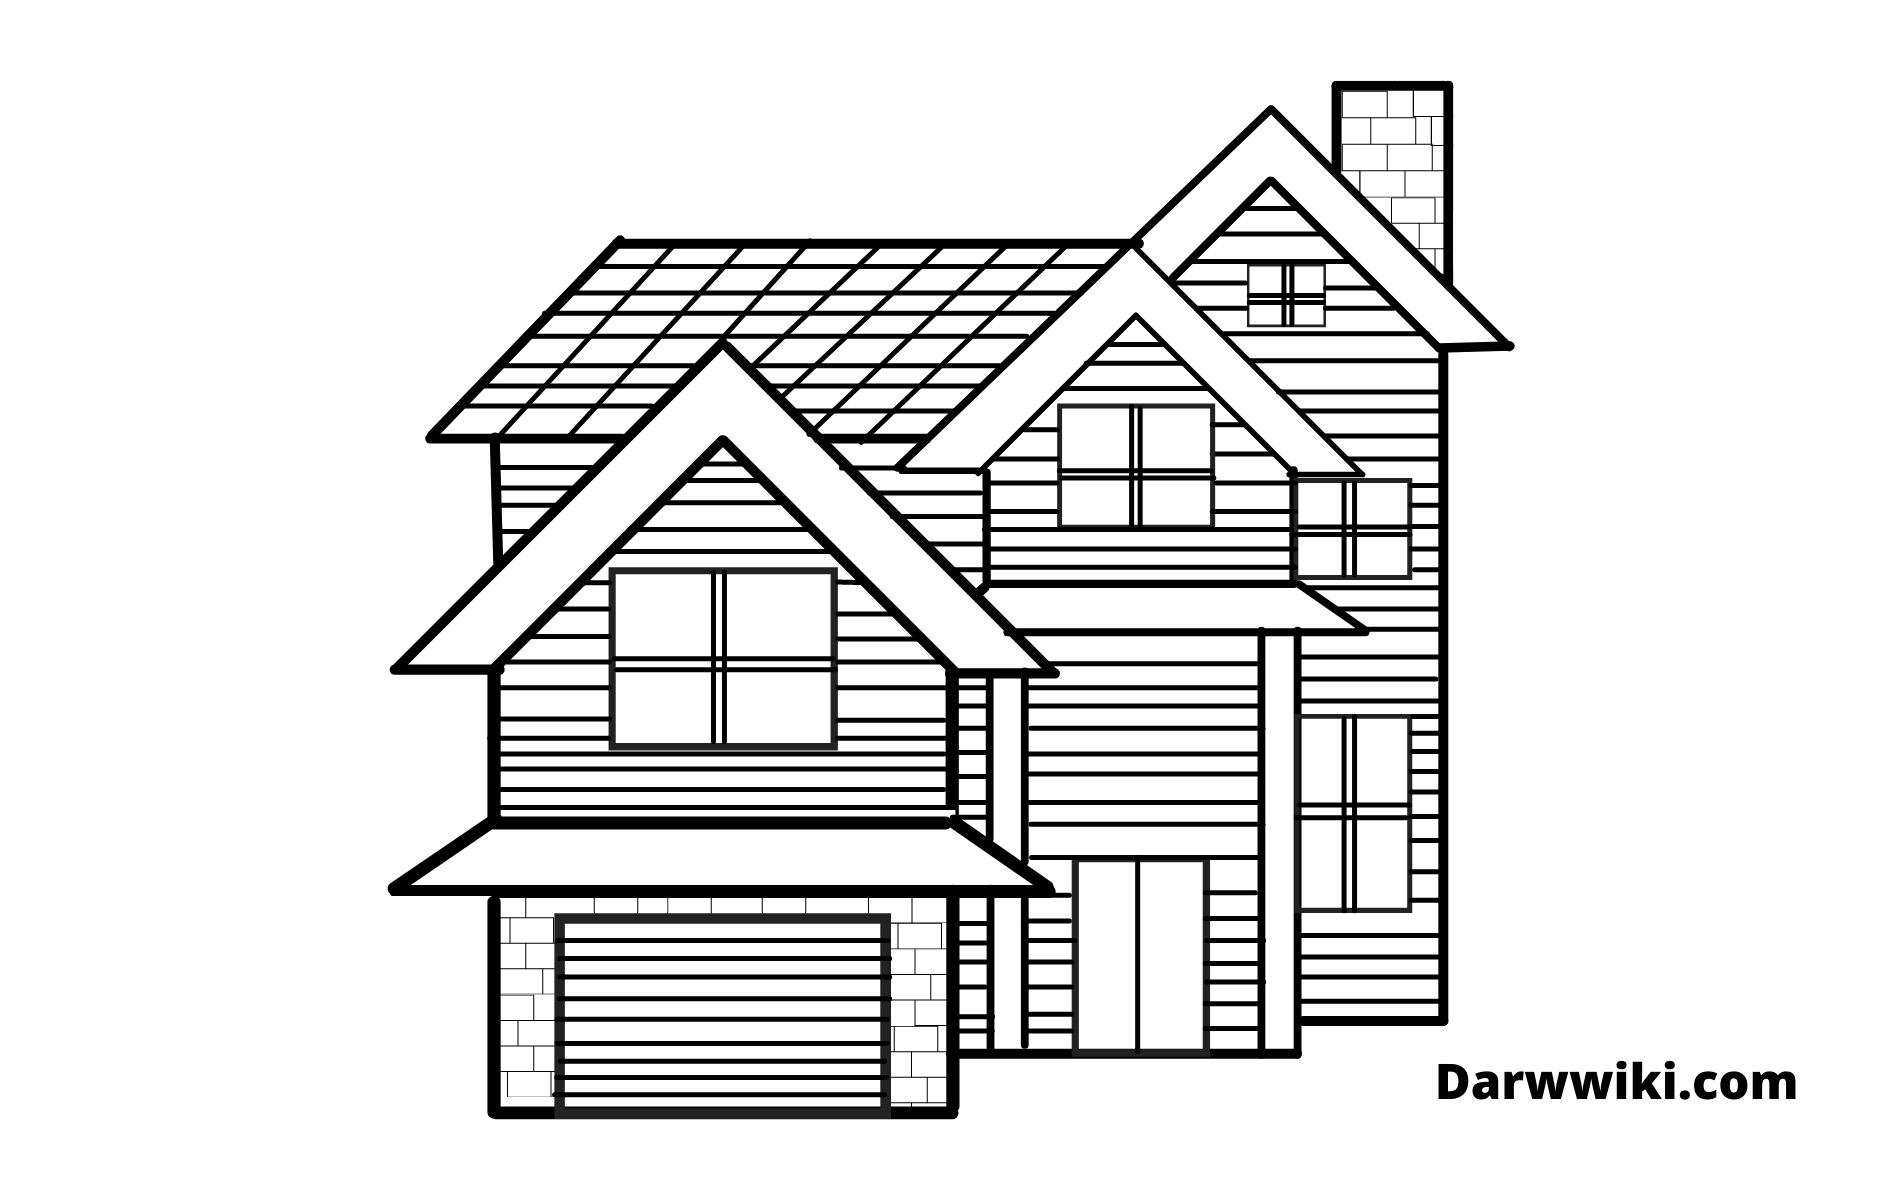 How To Draw House Step 10 - Draw All Rest of Line